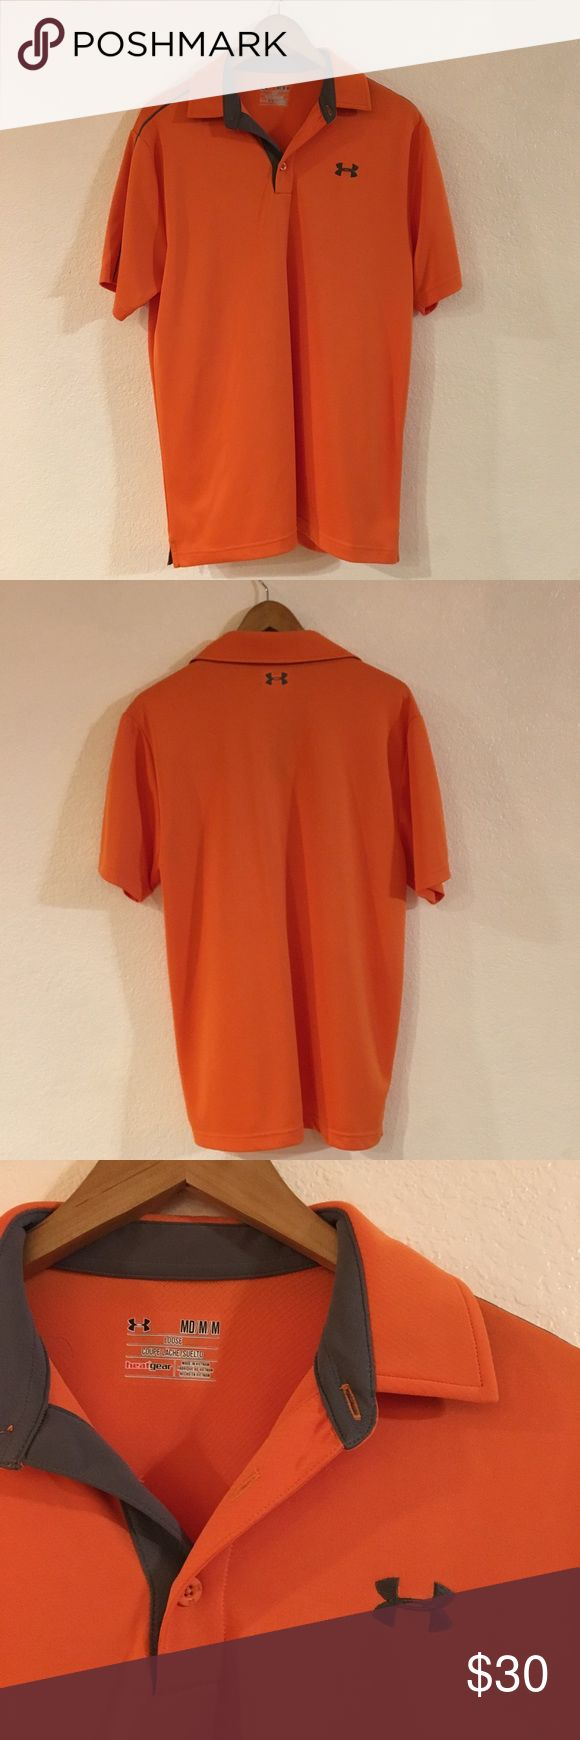 Under Armor Orange Polo Shirt Under Armor Orange Polo Shirt. Size Medium. Has collar. Brand new without tags. Originally purchased at Macy's. Under Armour Shirts Polos